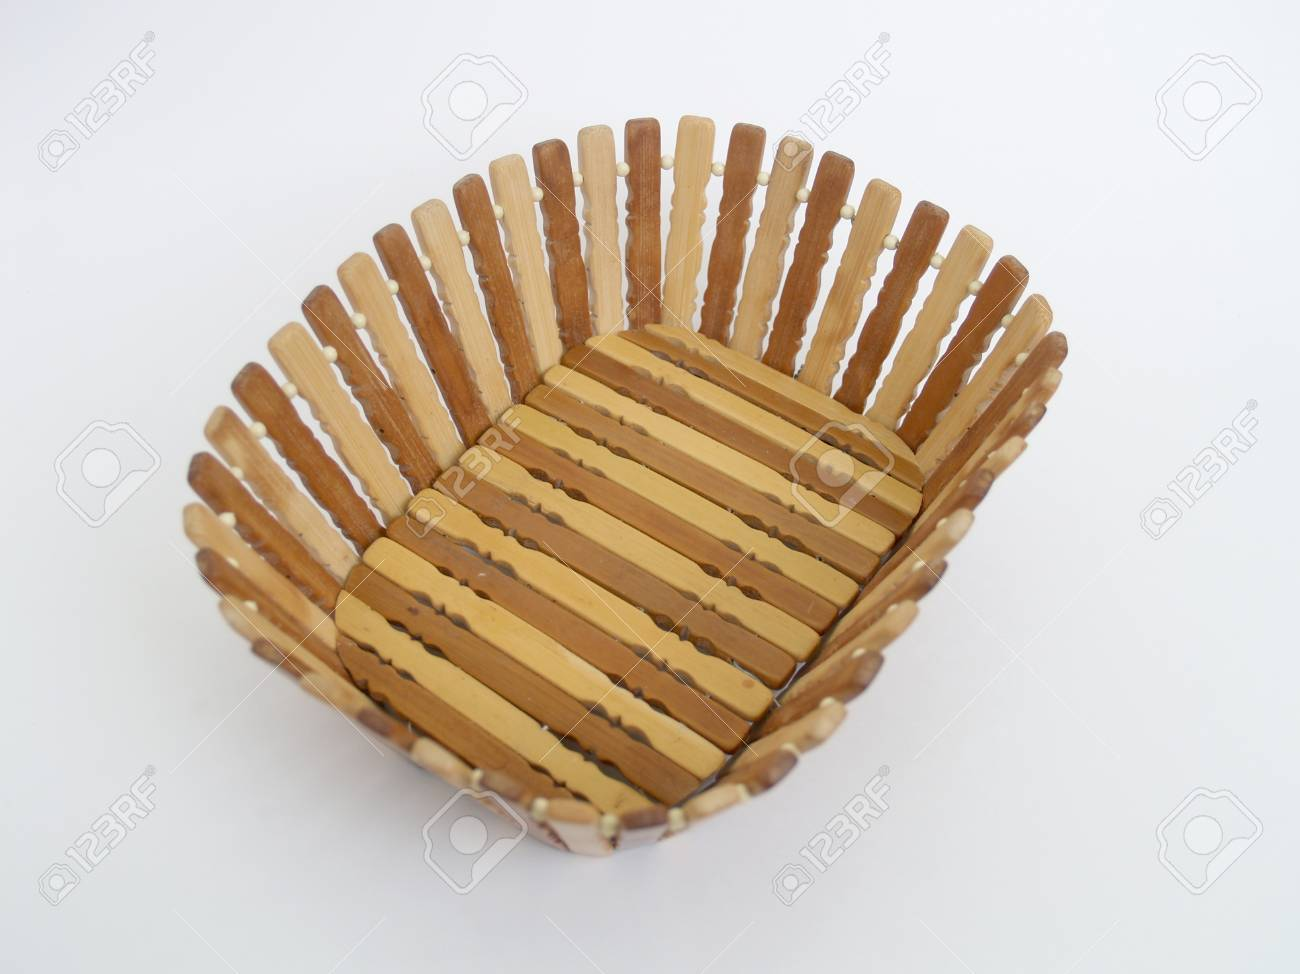 Wooden bread bin Stock Photo - 12433136